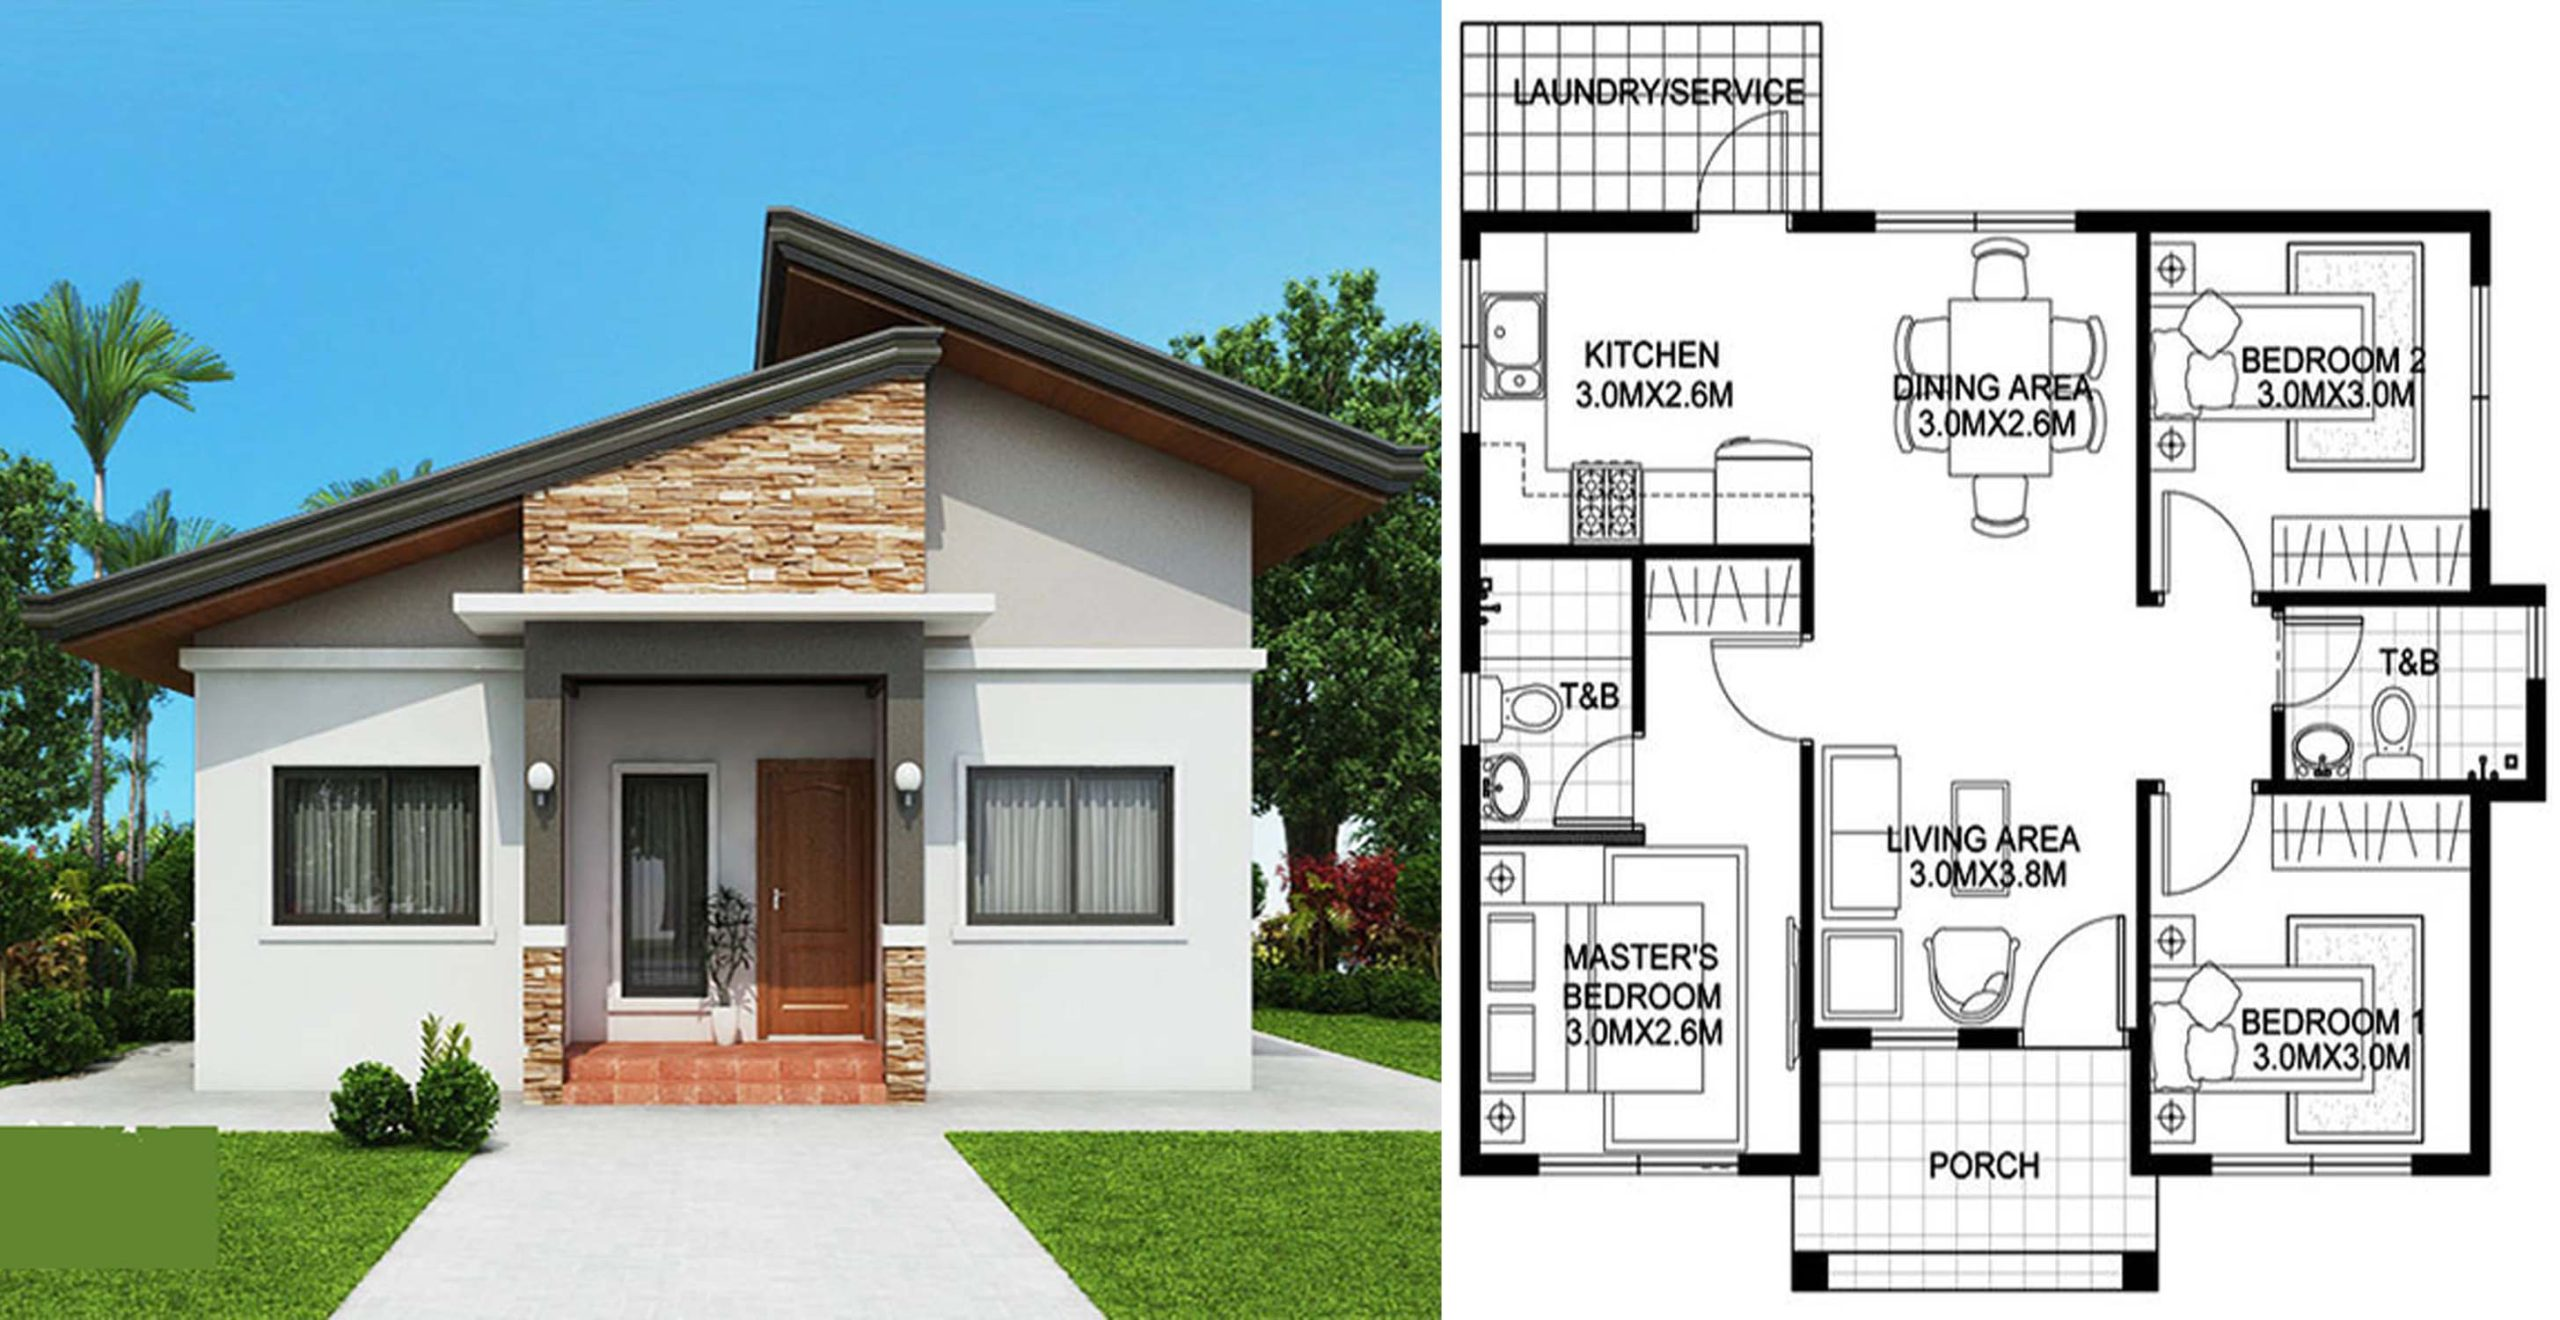 3 bedroom bungalow house plan - engineering discoveries